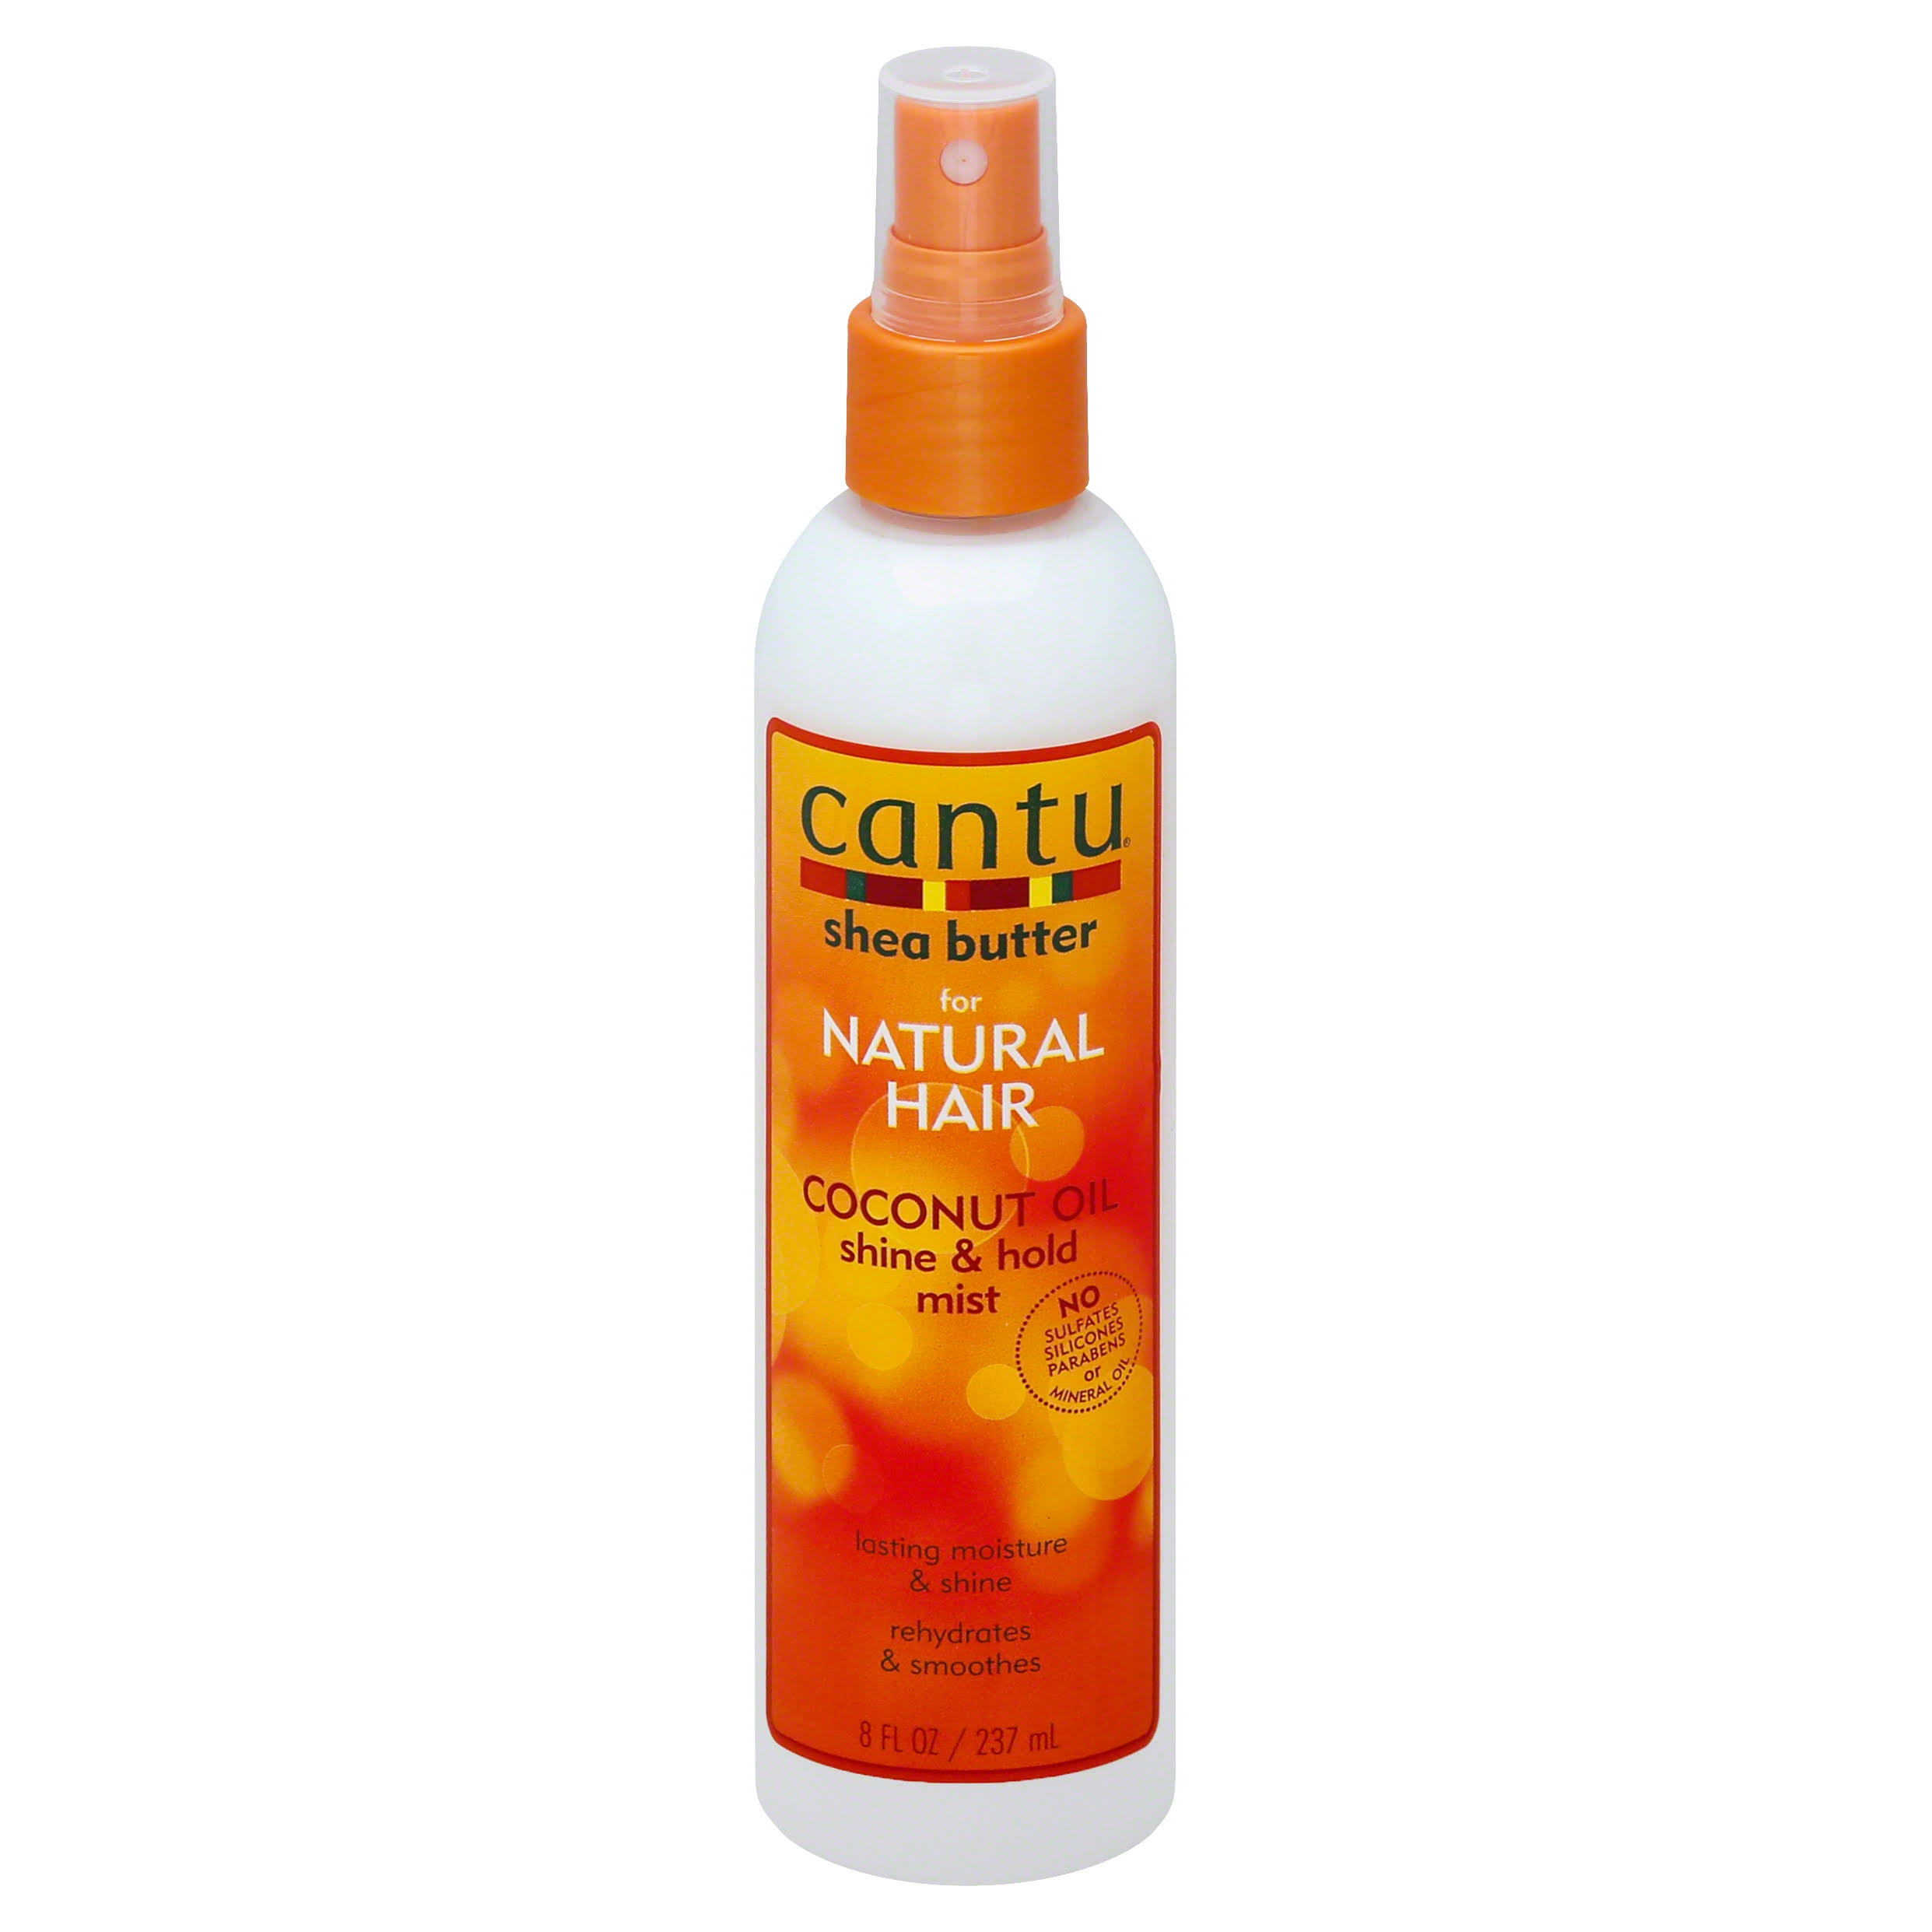 Cantu Shea Butter Coconut Oil Shine and Hold Mist - 237ml